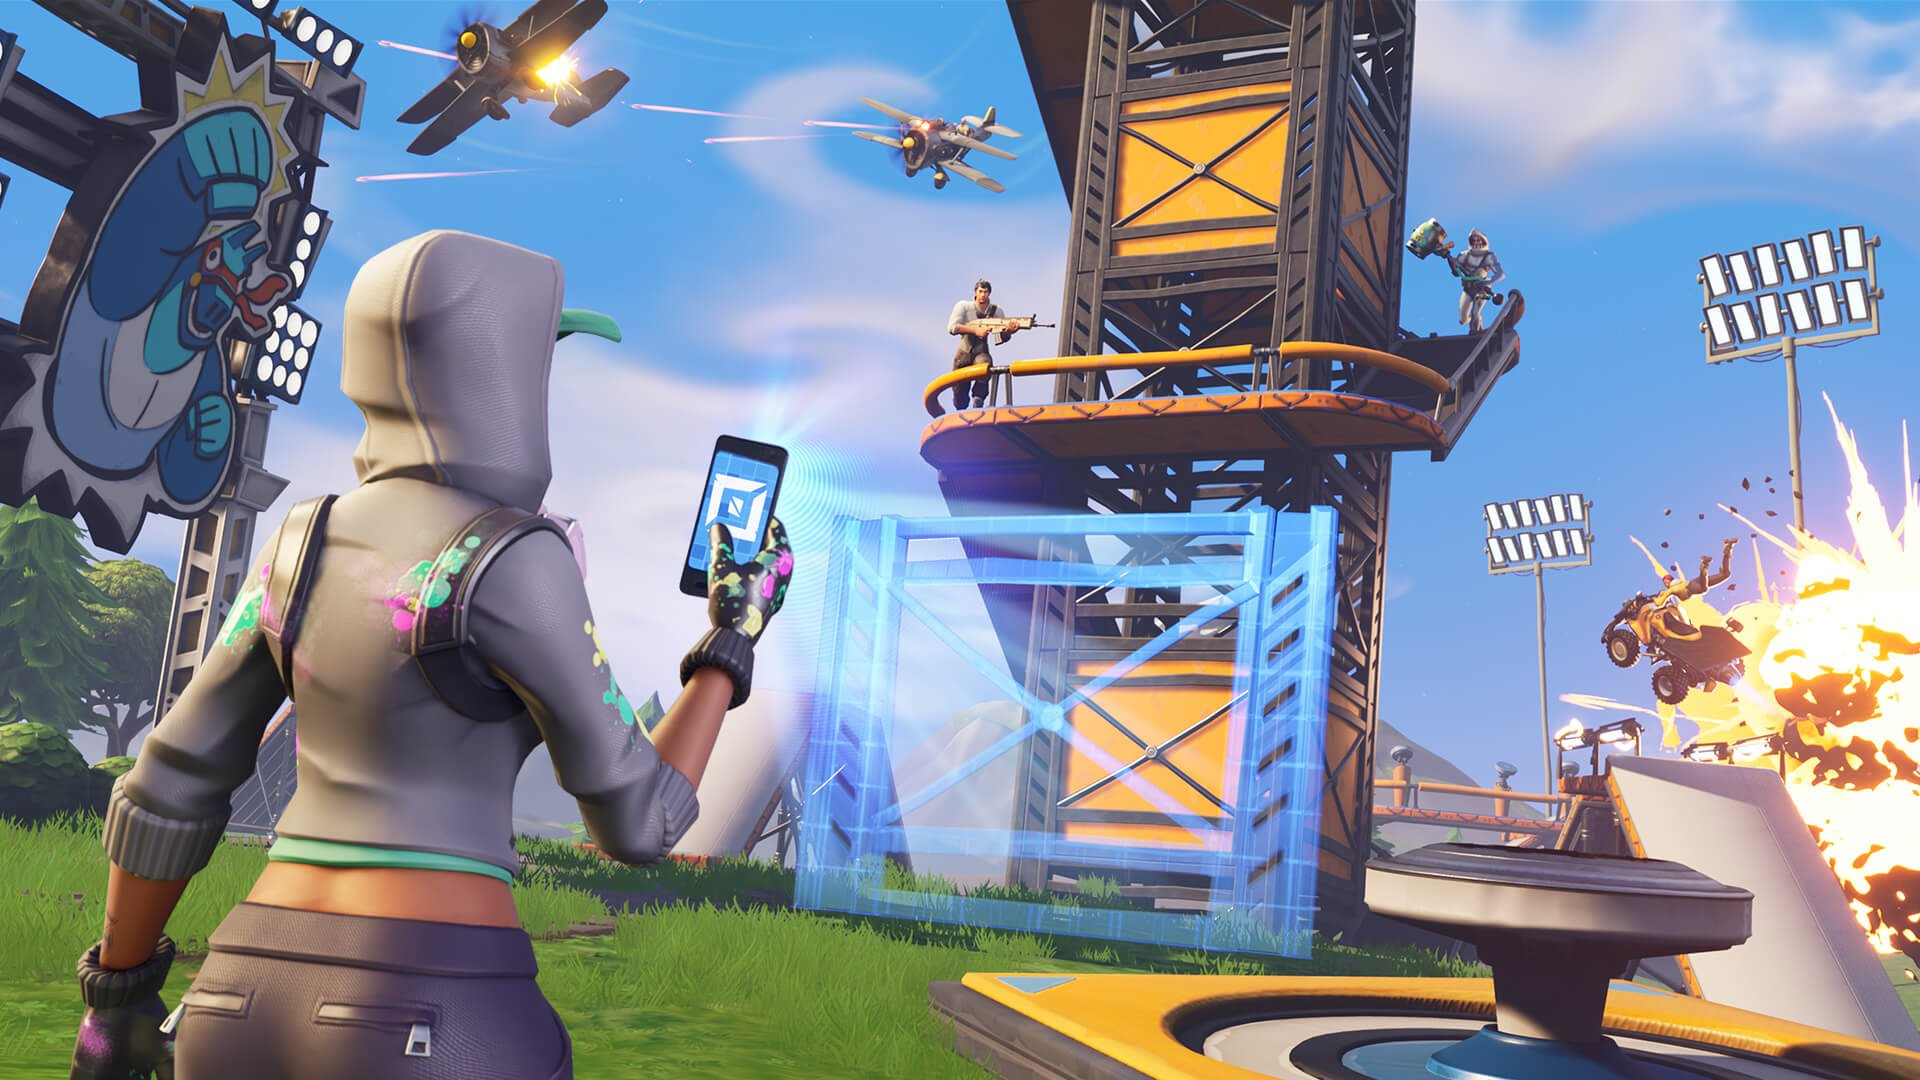 Fortnite updated: We look at what's new